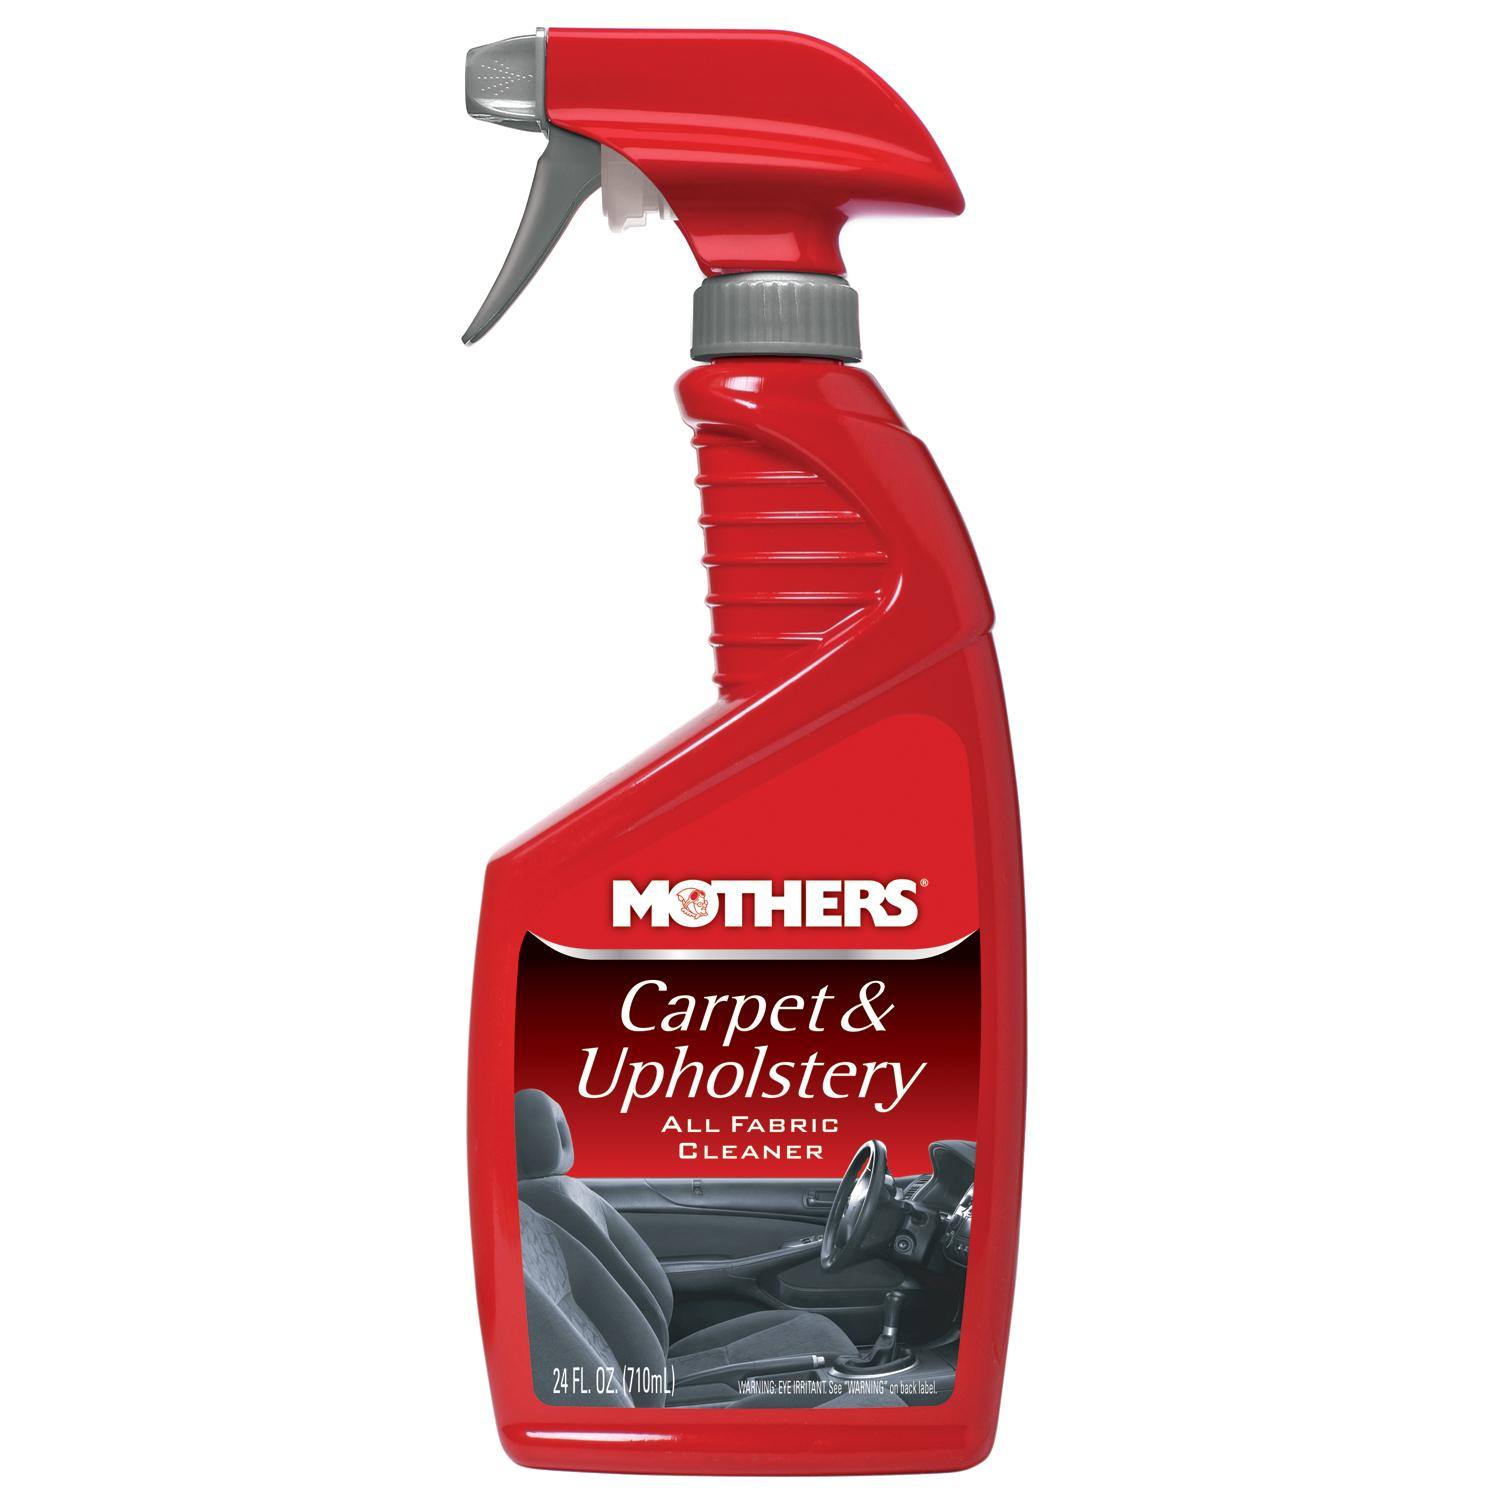 cloth sofa cleaning products purple sofas living rooms amazon mothers 05424 carpet and upholstery cleaner 24